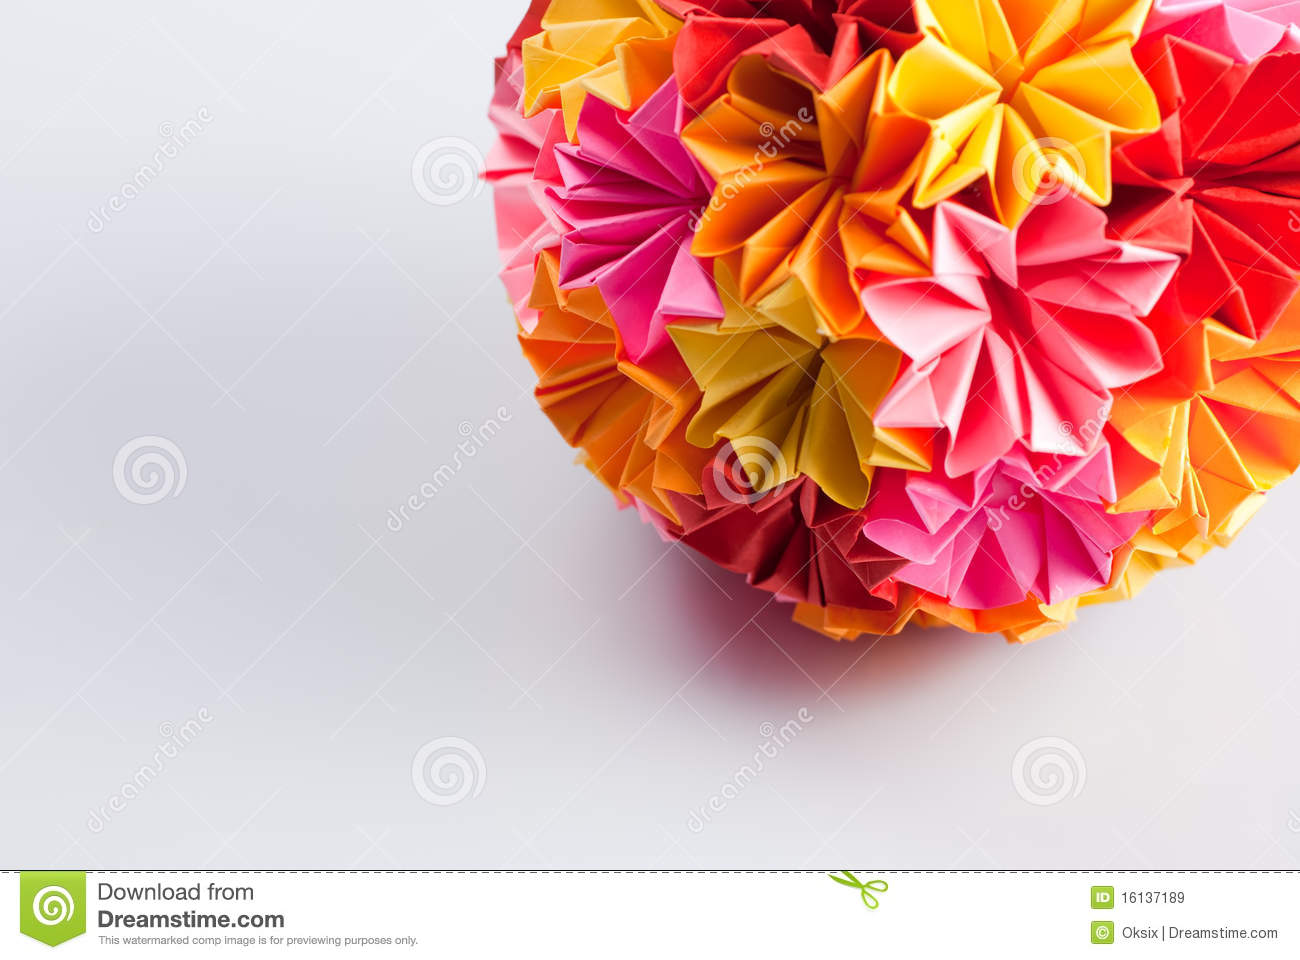 Origami kusudama flower stock image image of rainbow 16137189 download origami kusudama flower stock image image of rainbow 16137189 mightylinksfo